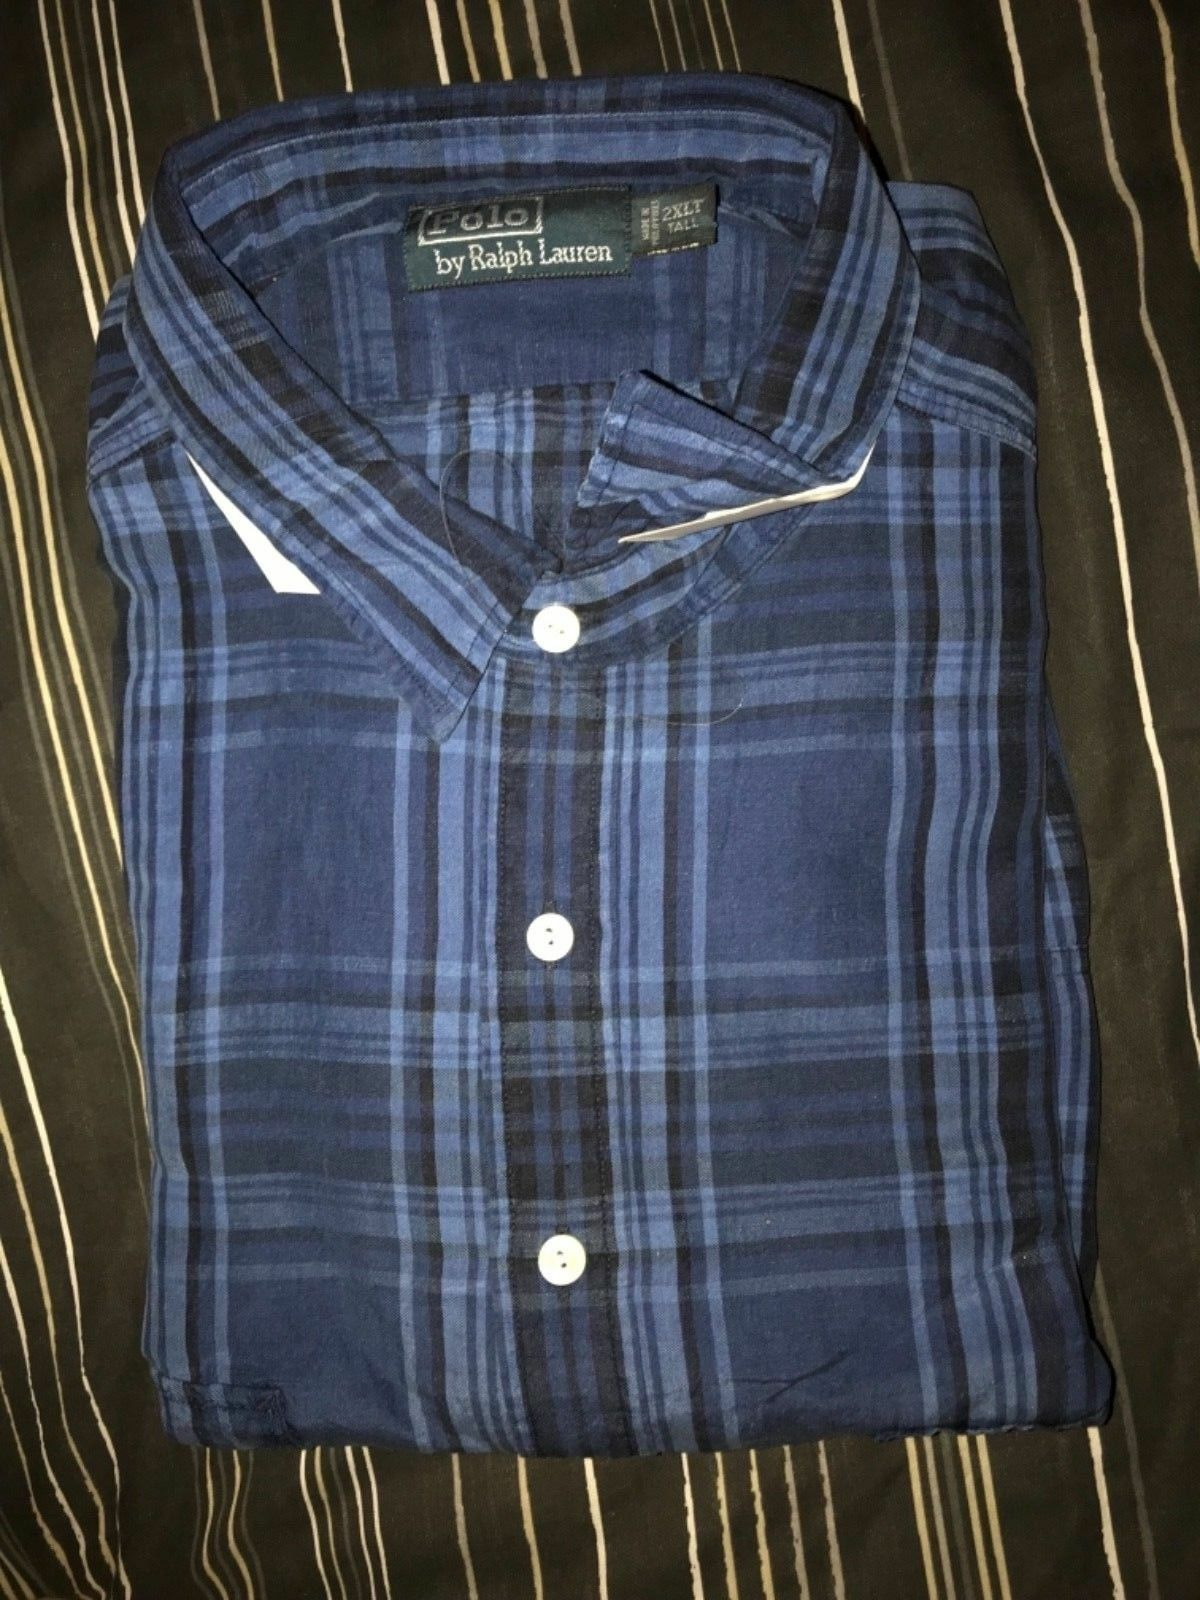 Ralph Lauren  blu Shirt Pony Small Pony Shirt 4XLT 4X Tall c7c161